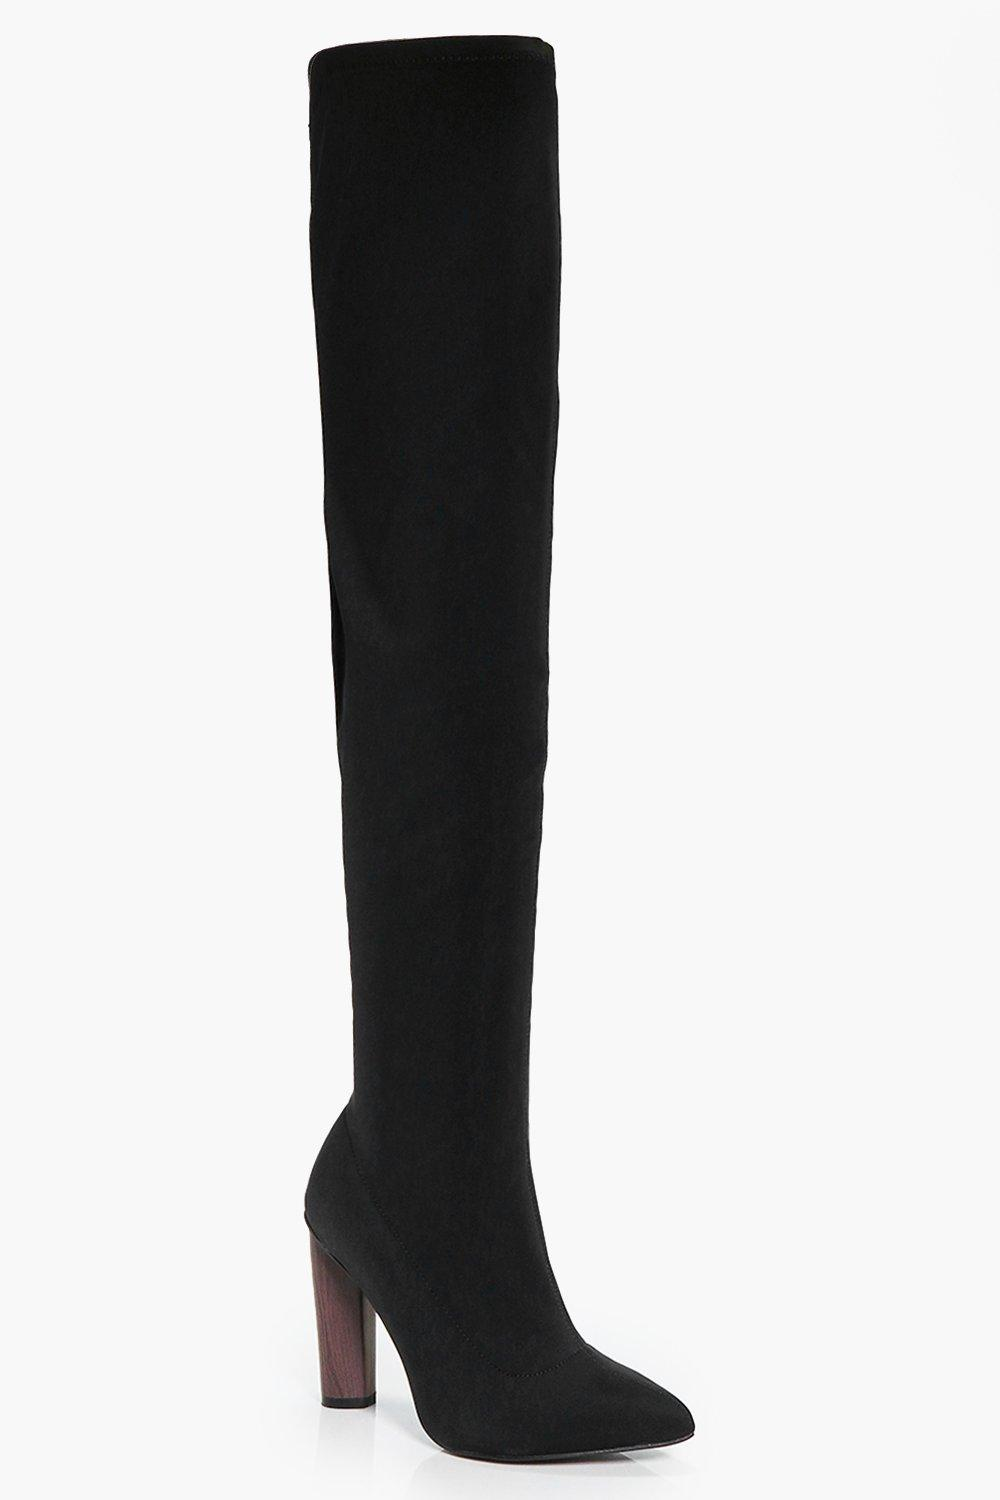 Keira Thigh High Boot